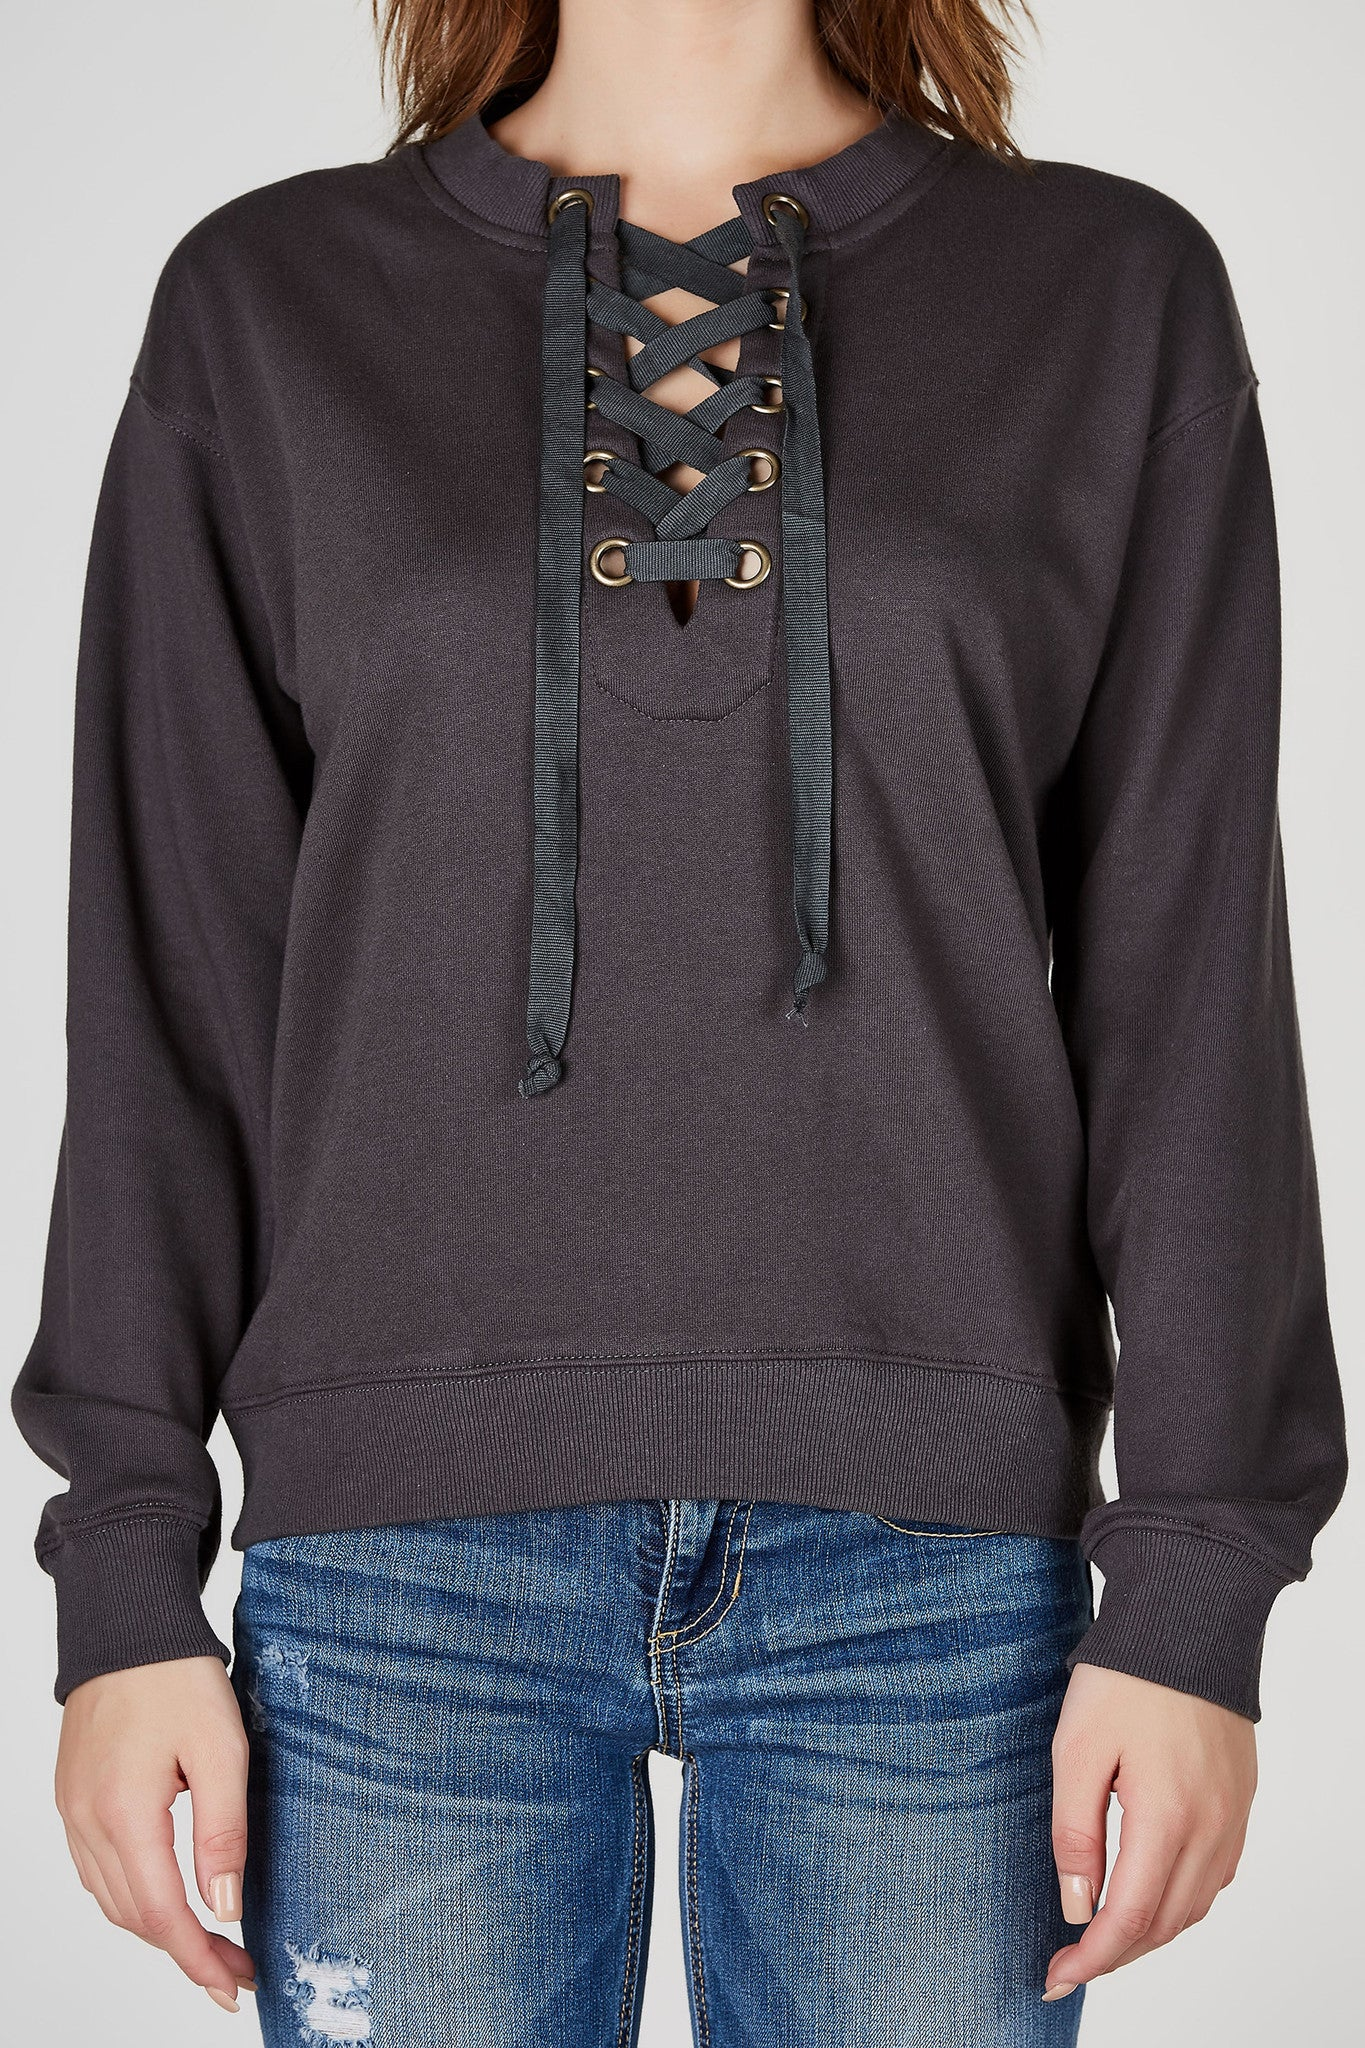 A trendy sweatshirt made for those lazy days when you're in an outfit funk! Awesome lace up neckline with classic ribbed hem all around. Relaxed fit, perfect for a cool laid back outfit. Throw on your favortie skinny jeans and sneakers to complete the look!